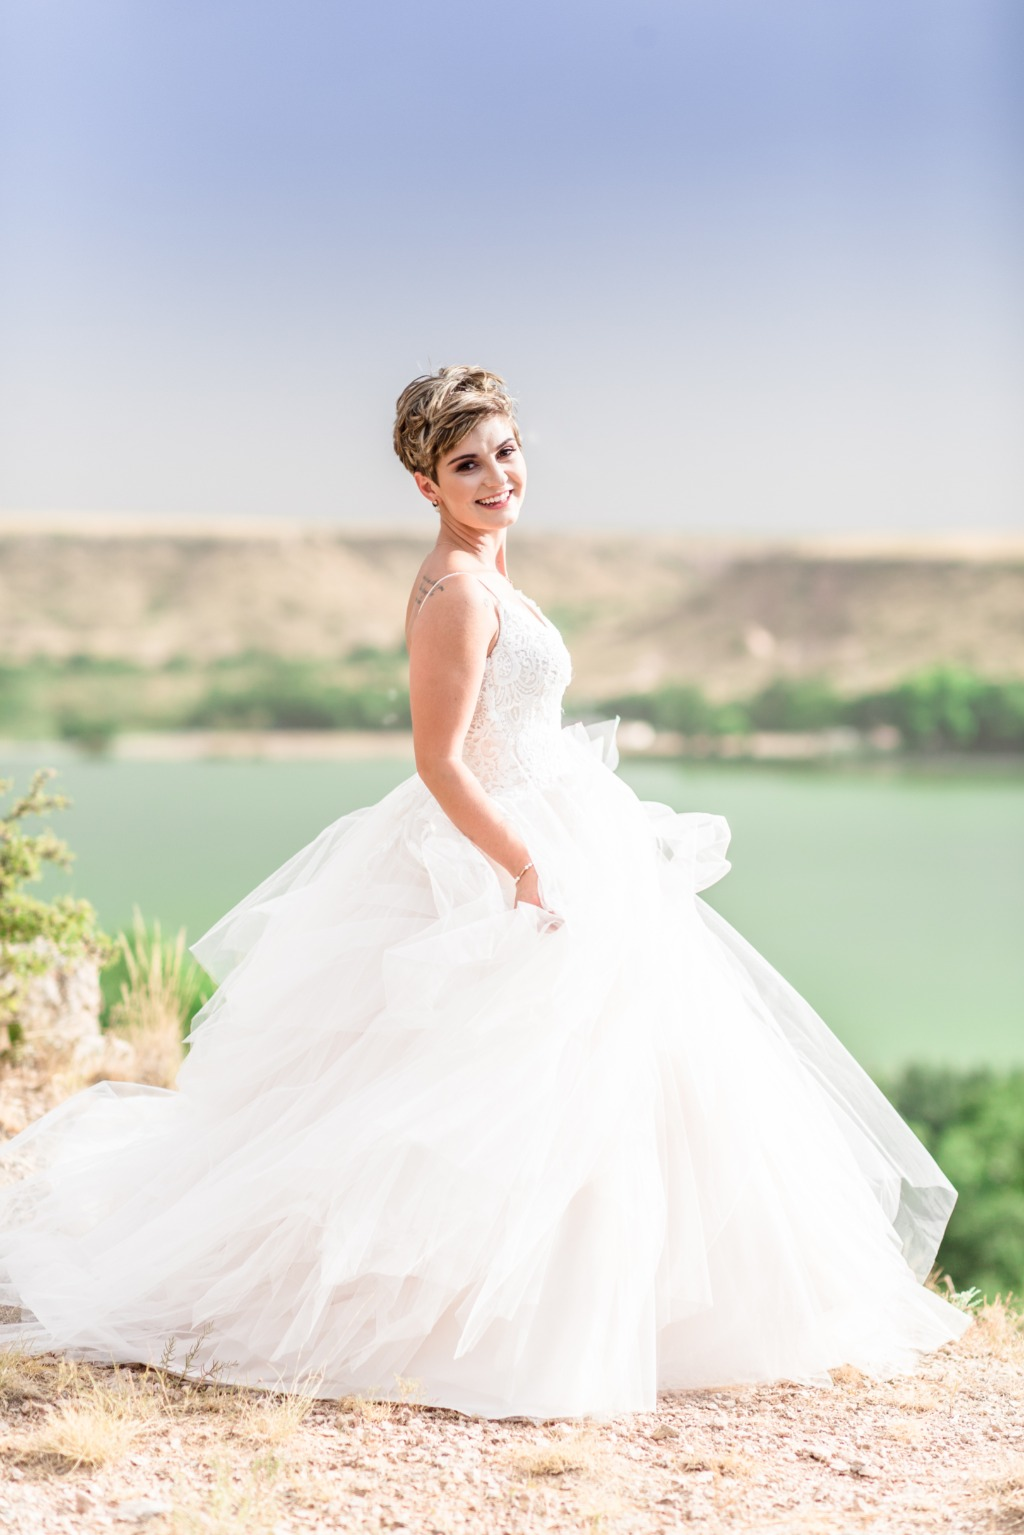 Check out my latest bridal session: